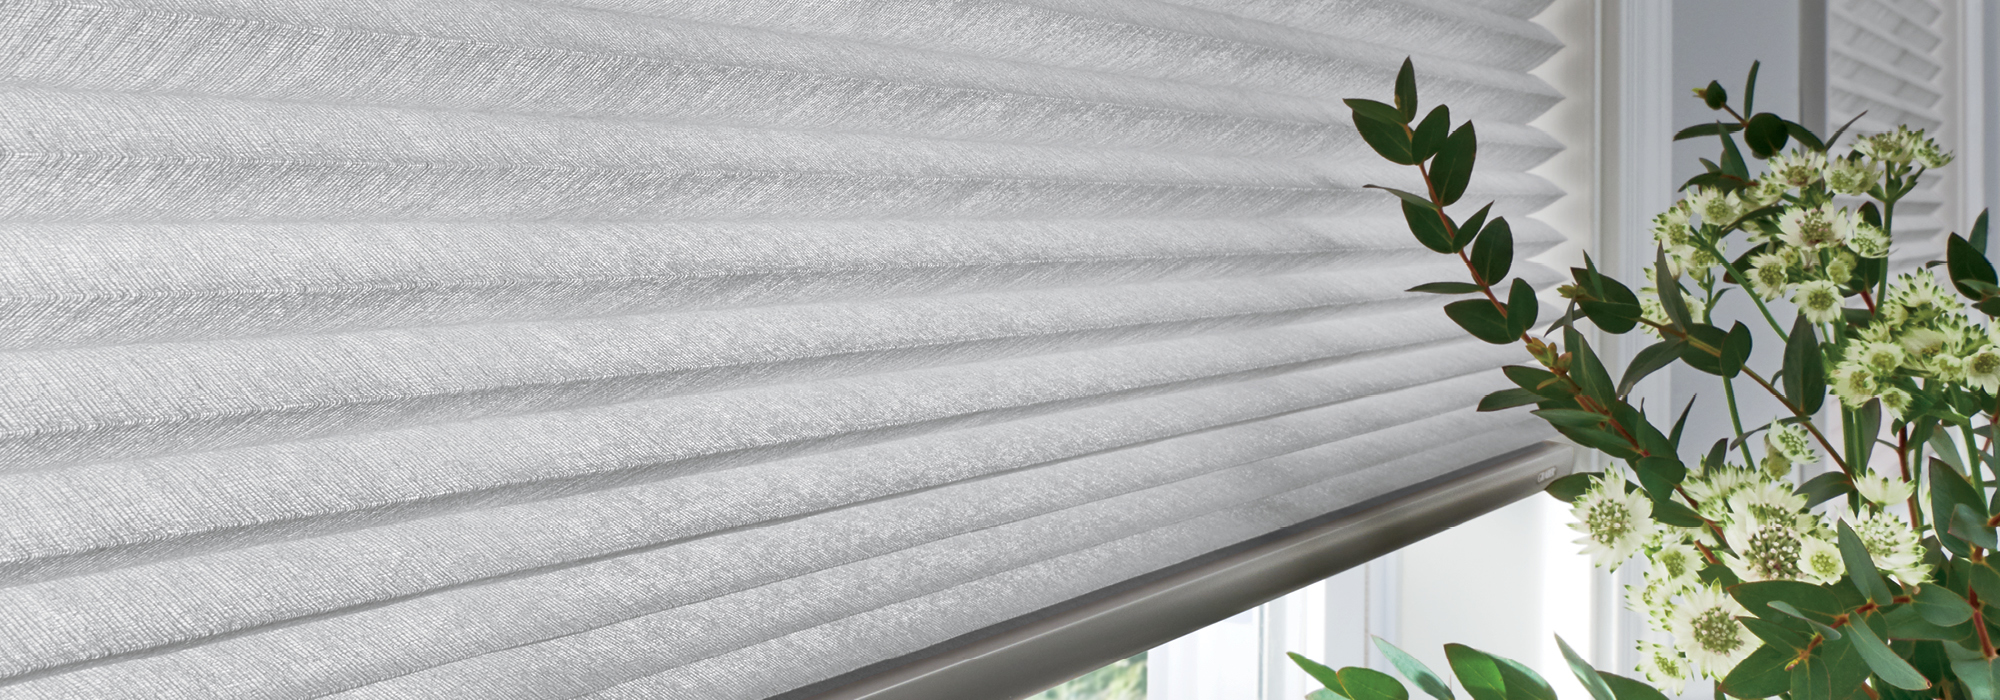 free cordless - Graber is offering free cordless on select shadescall J and J Blind for details479 646 6339